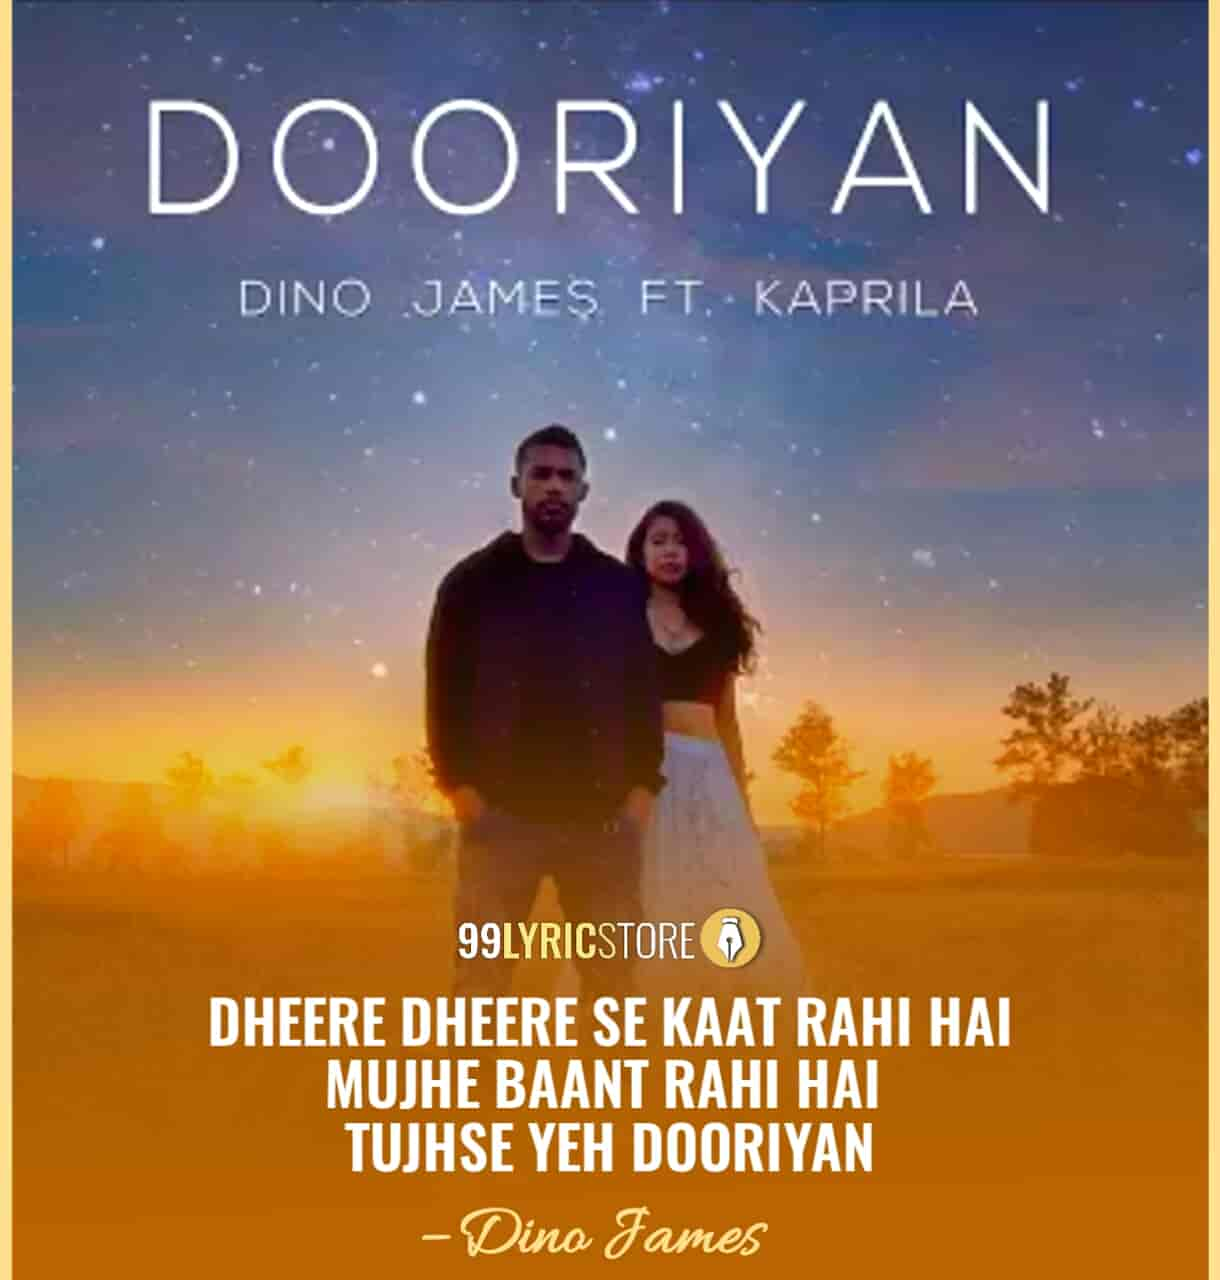 Dooriyan Song Images Sung by Dino James